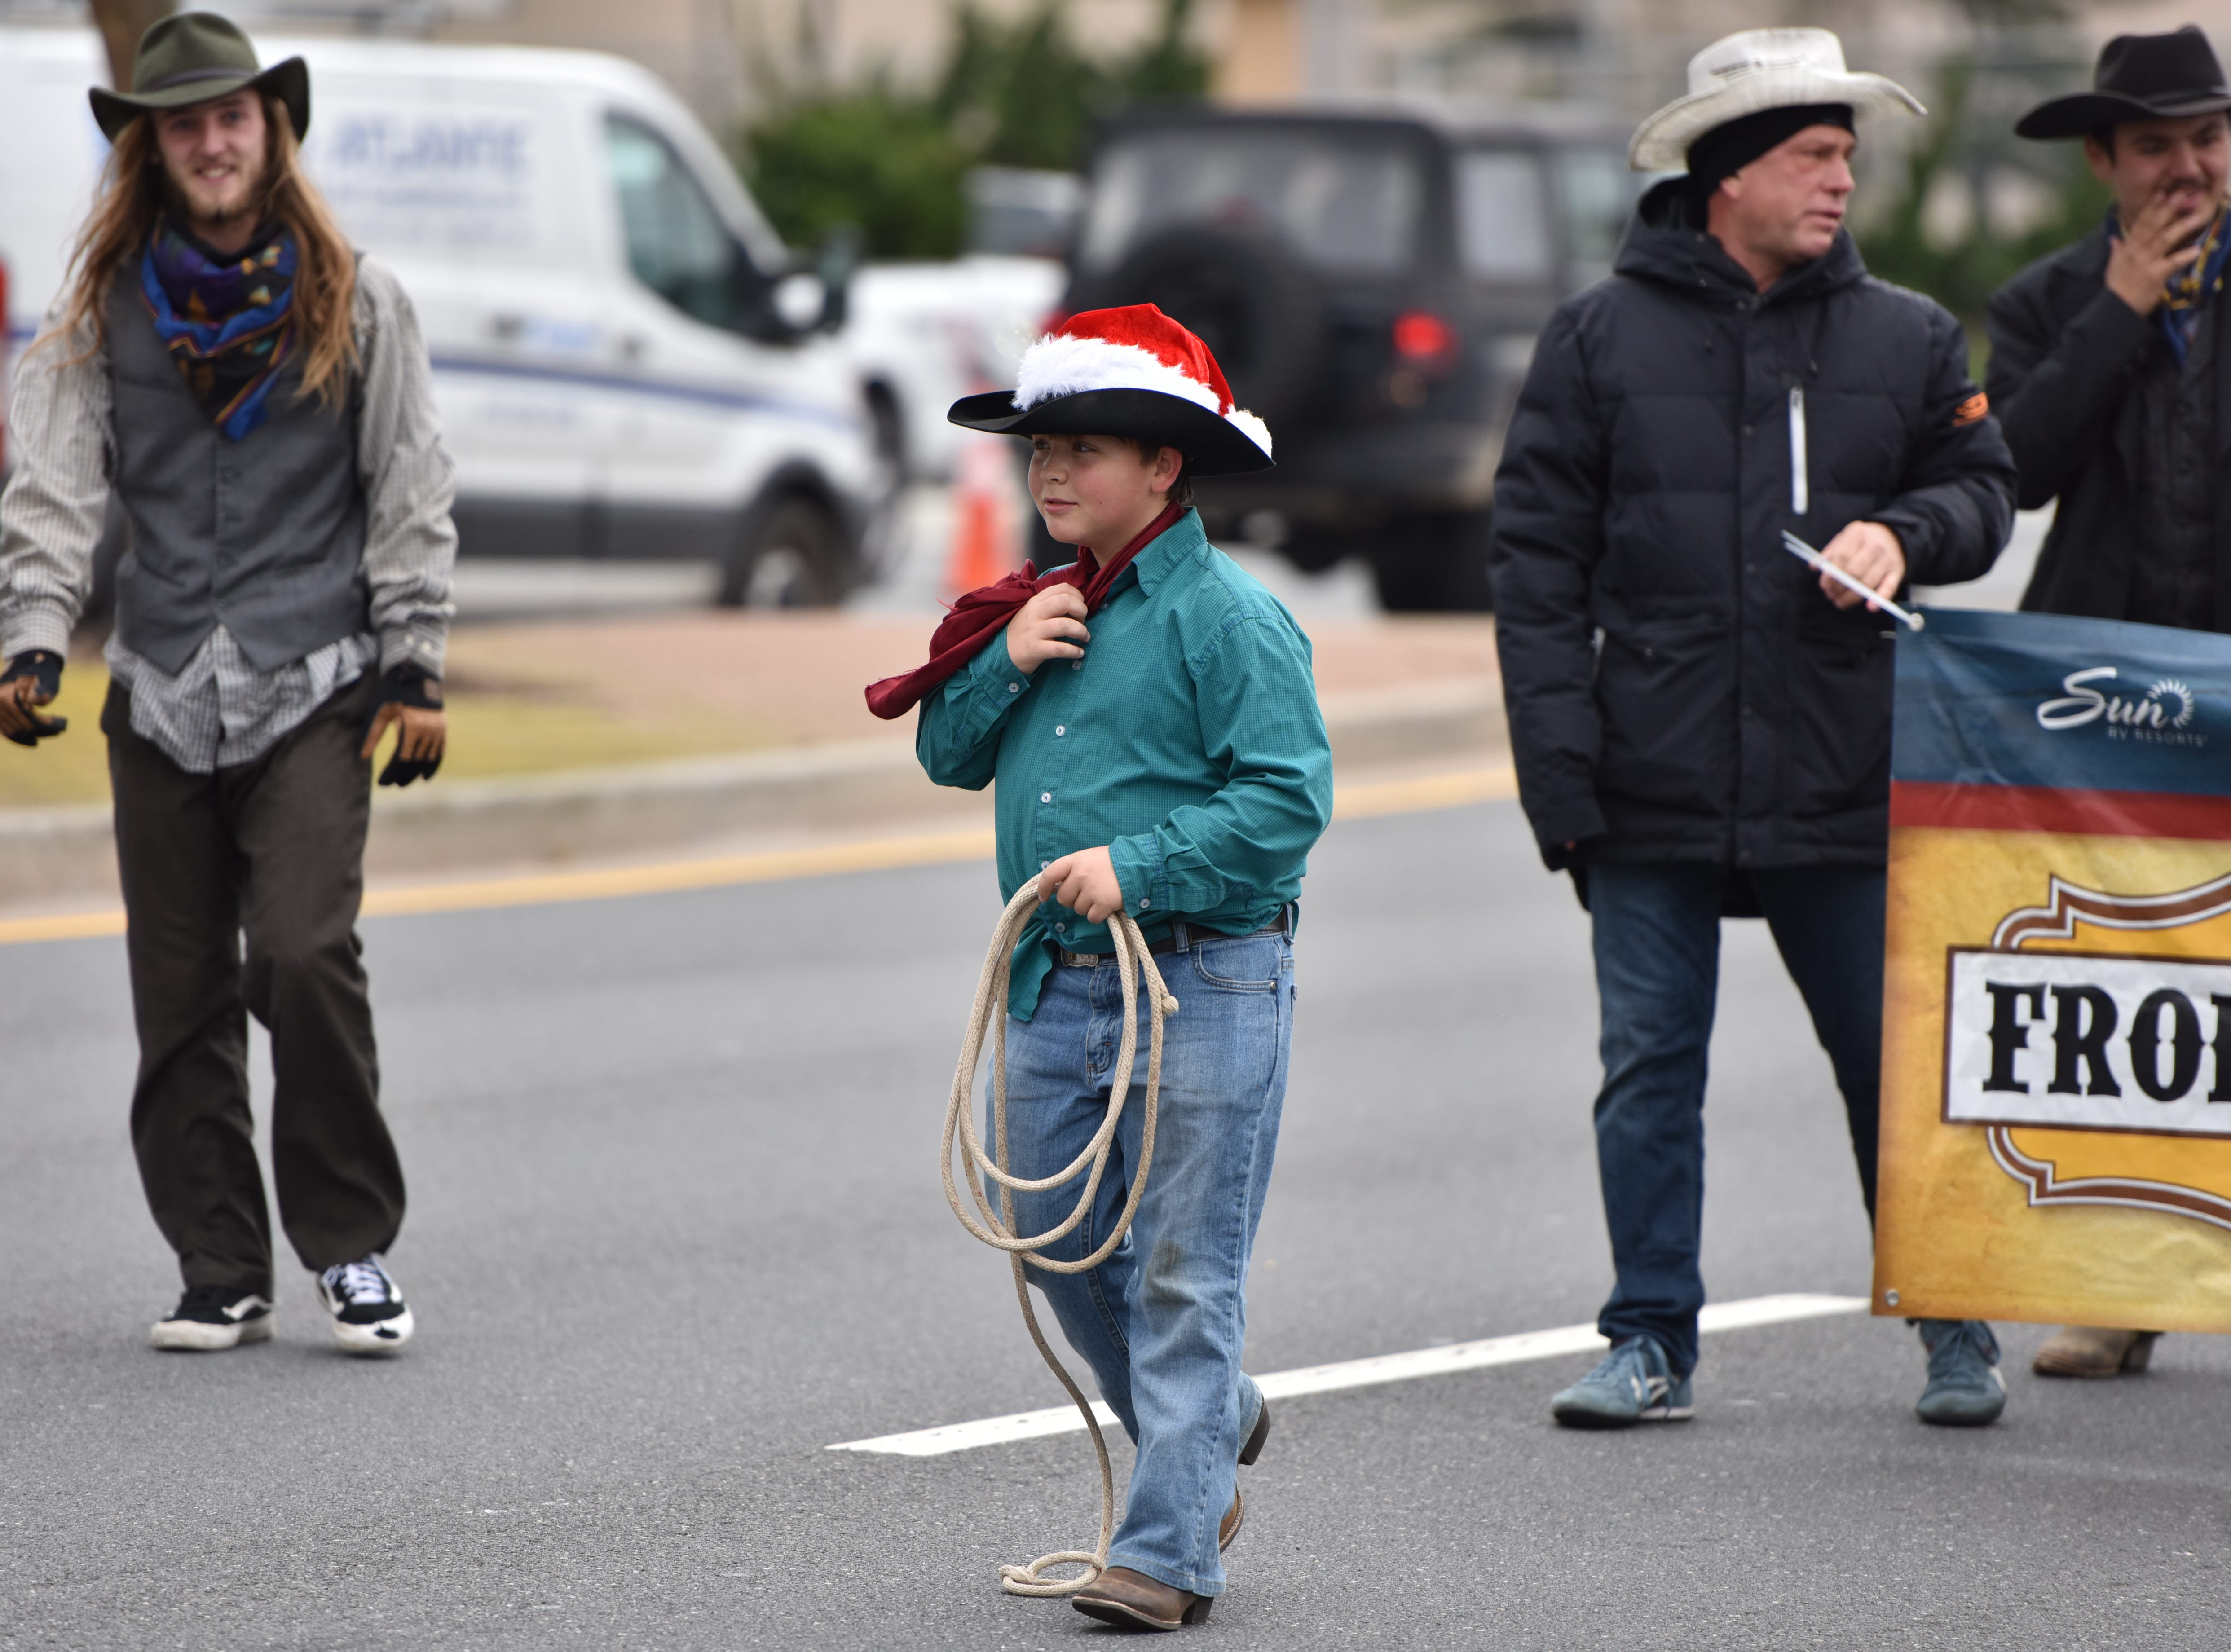 Performers from Frontier Town at the Ocean City Chrsitmas parade on Saturday, Dec. 1, 2018.